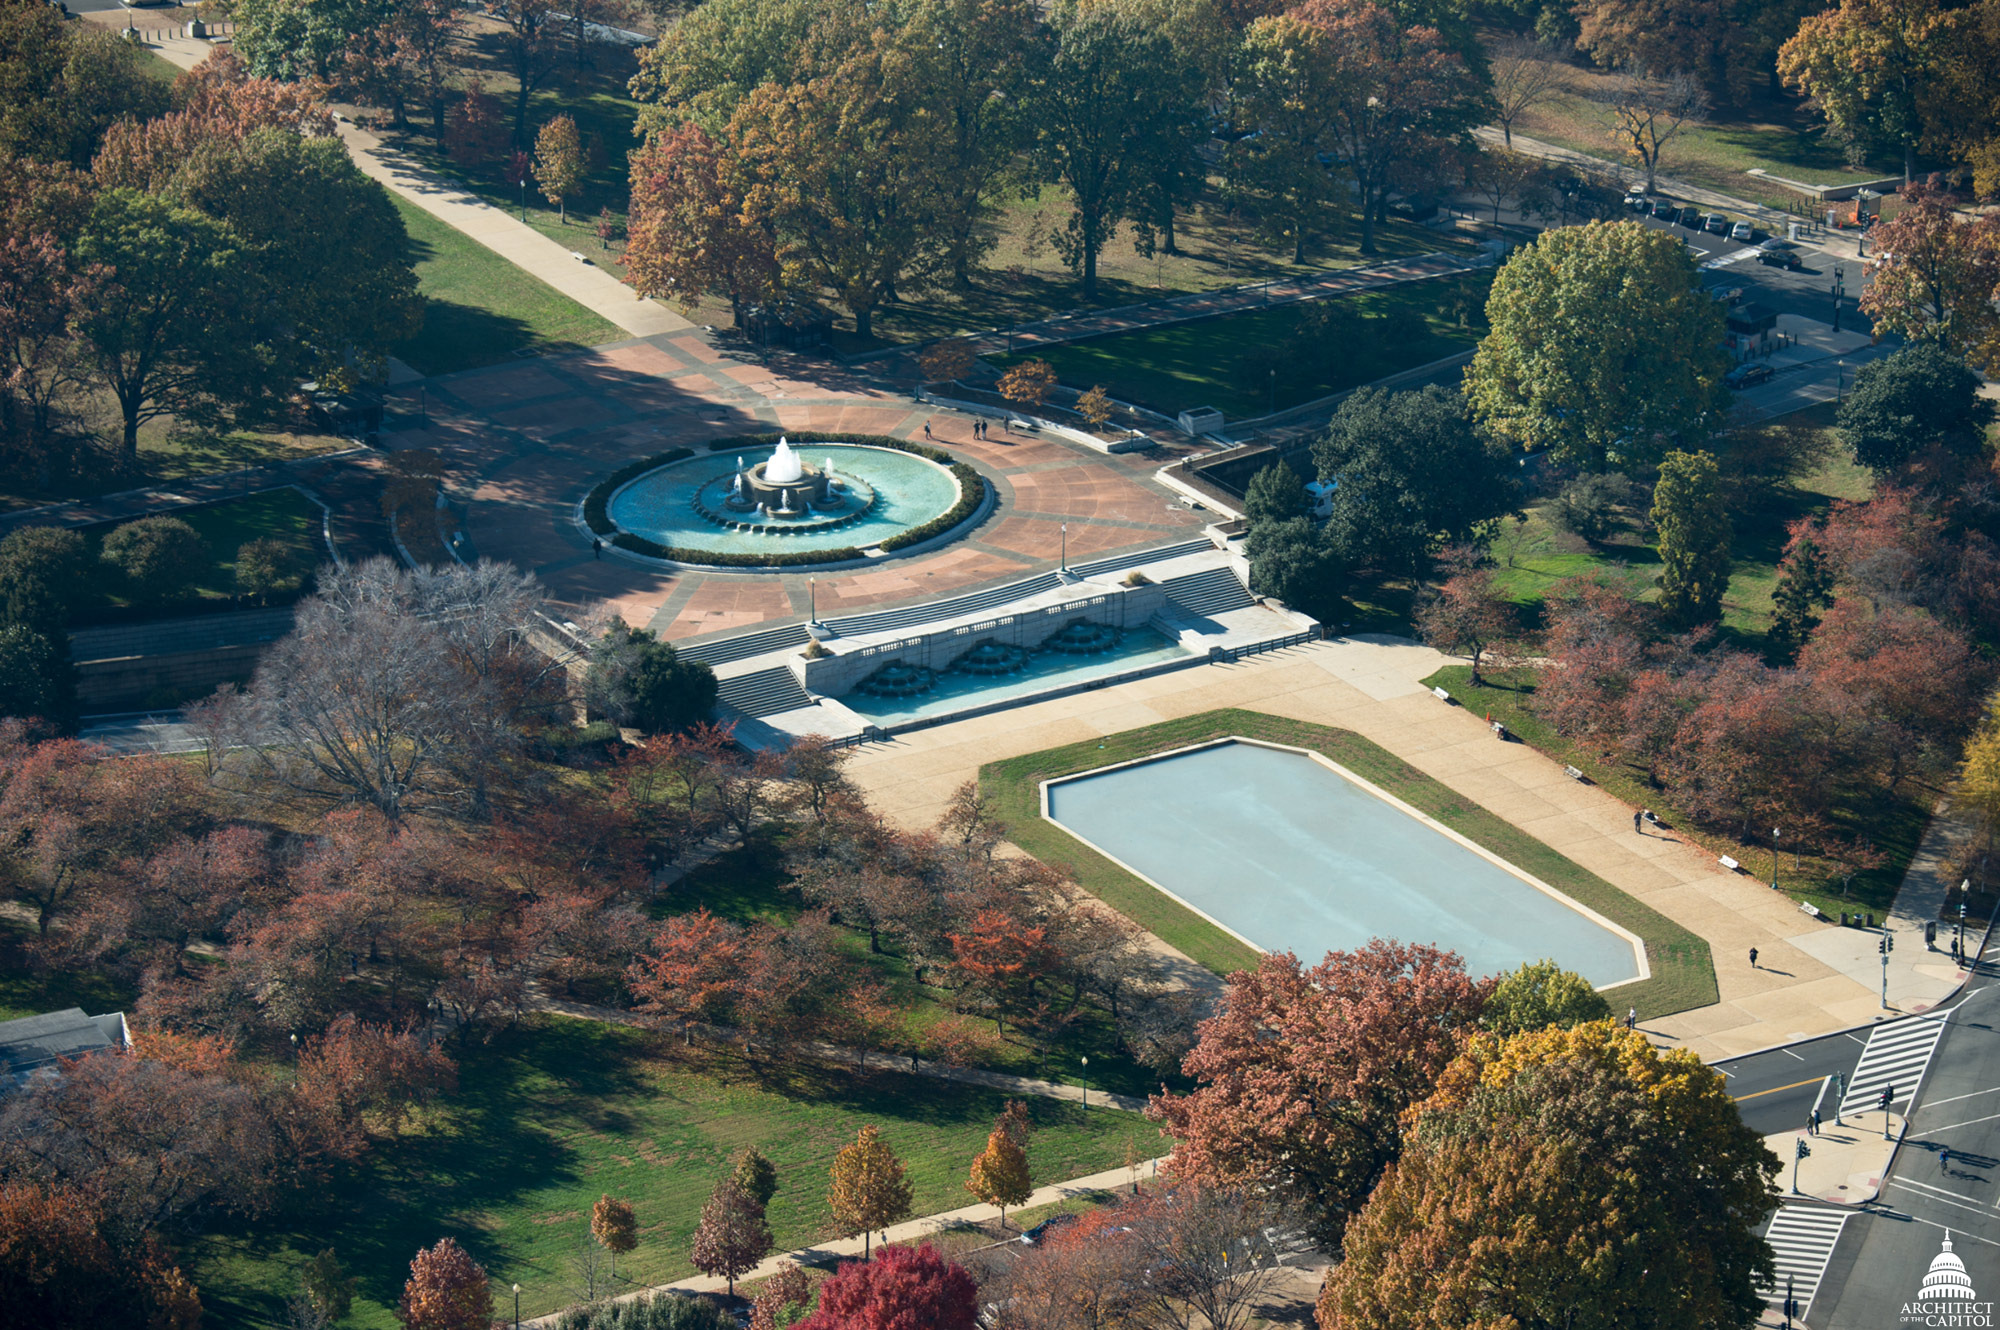 The Senate Fountain consists of three components.